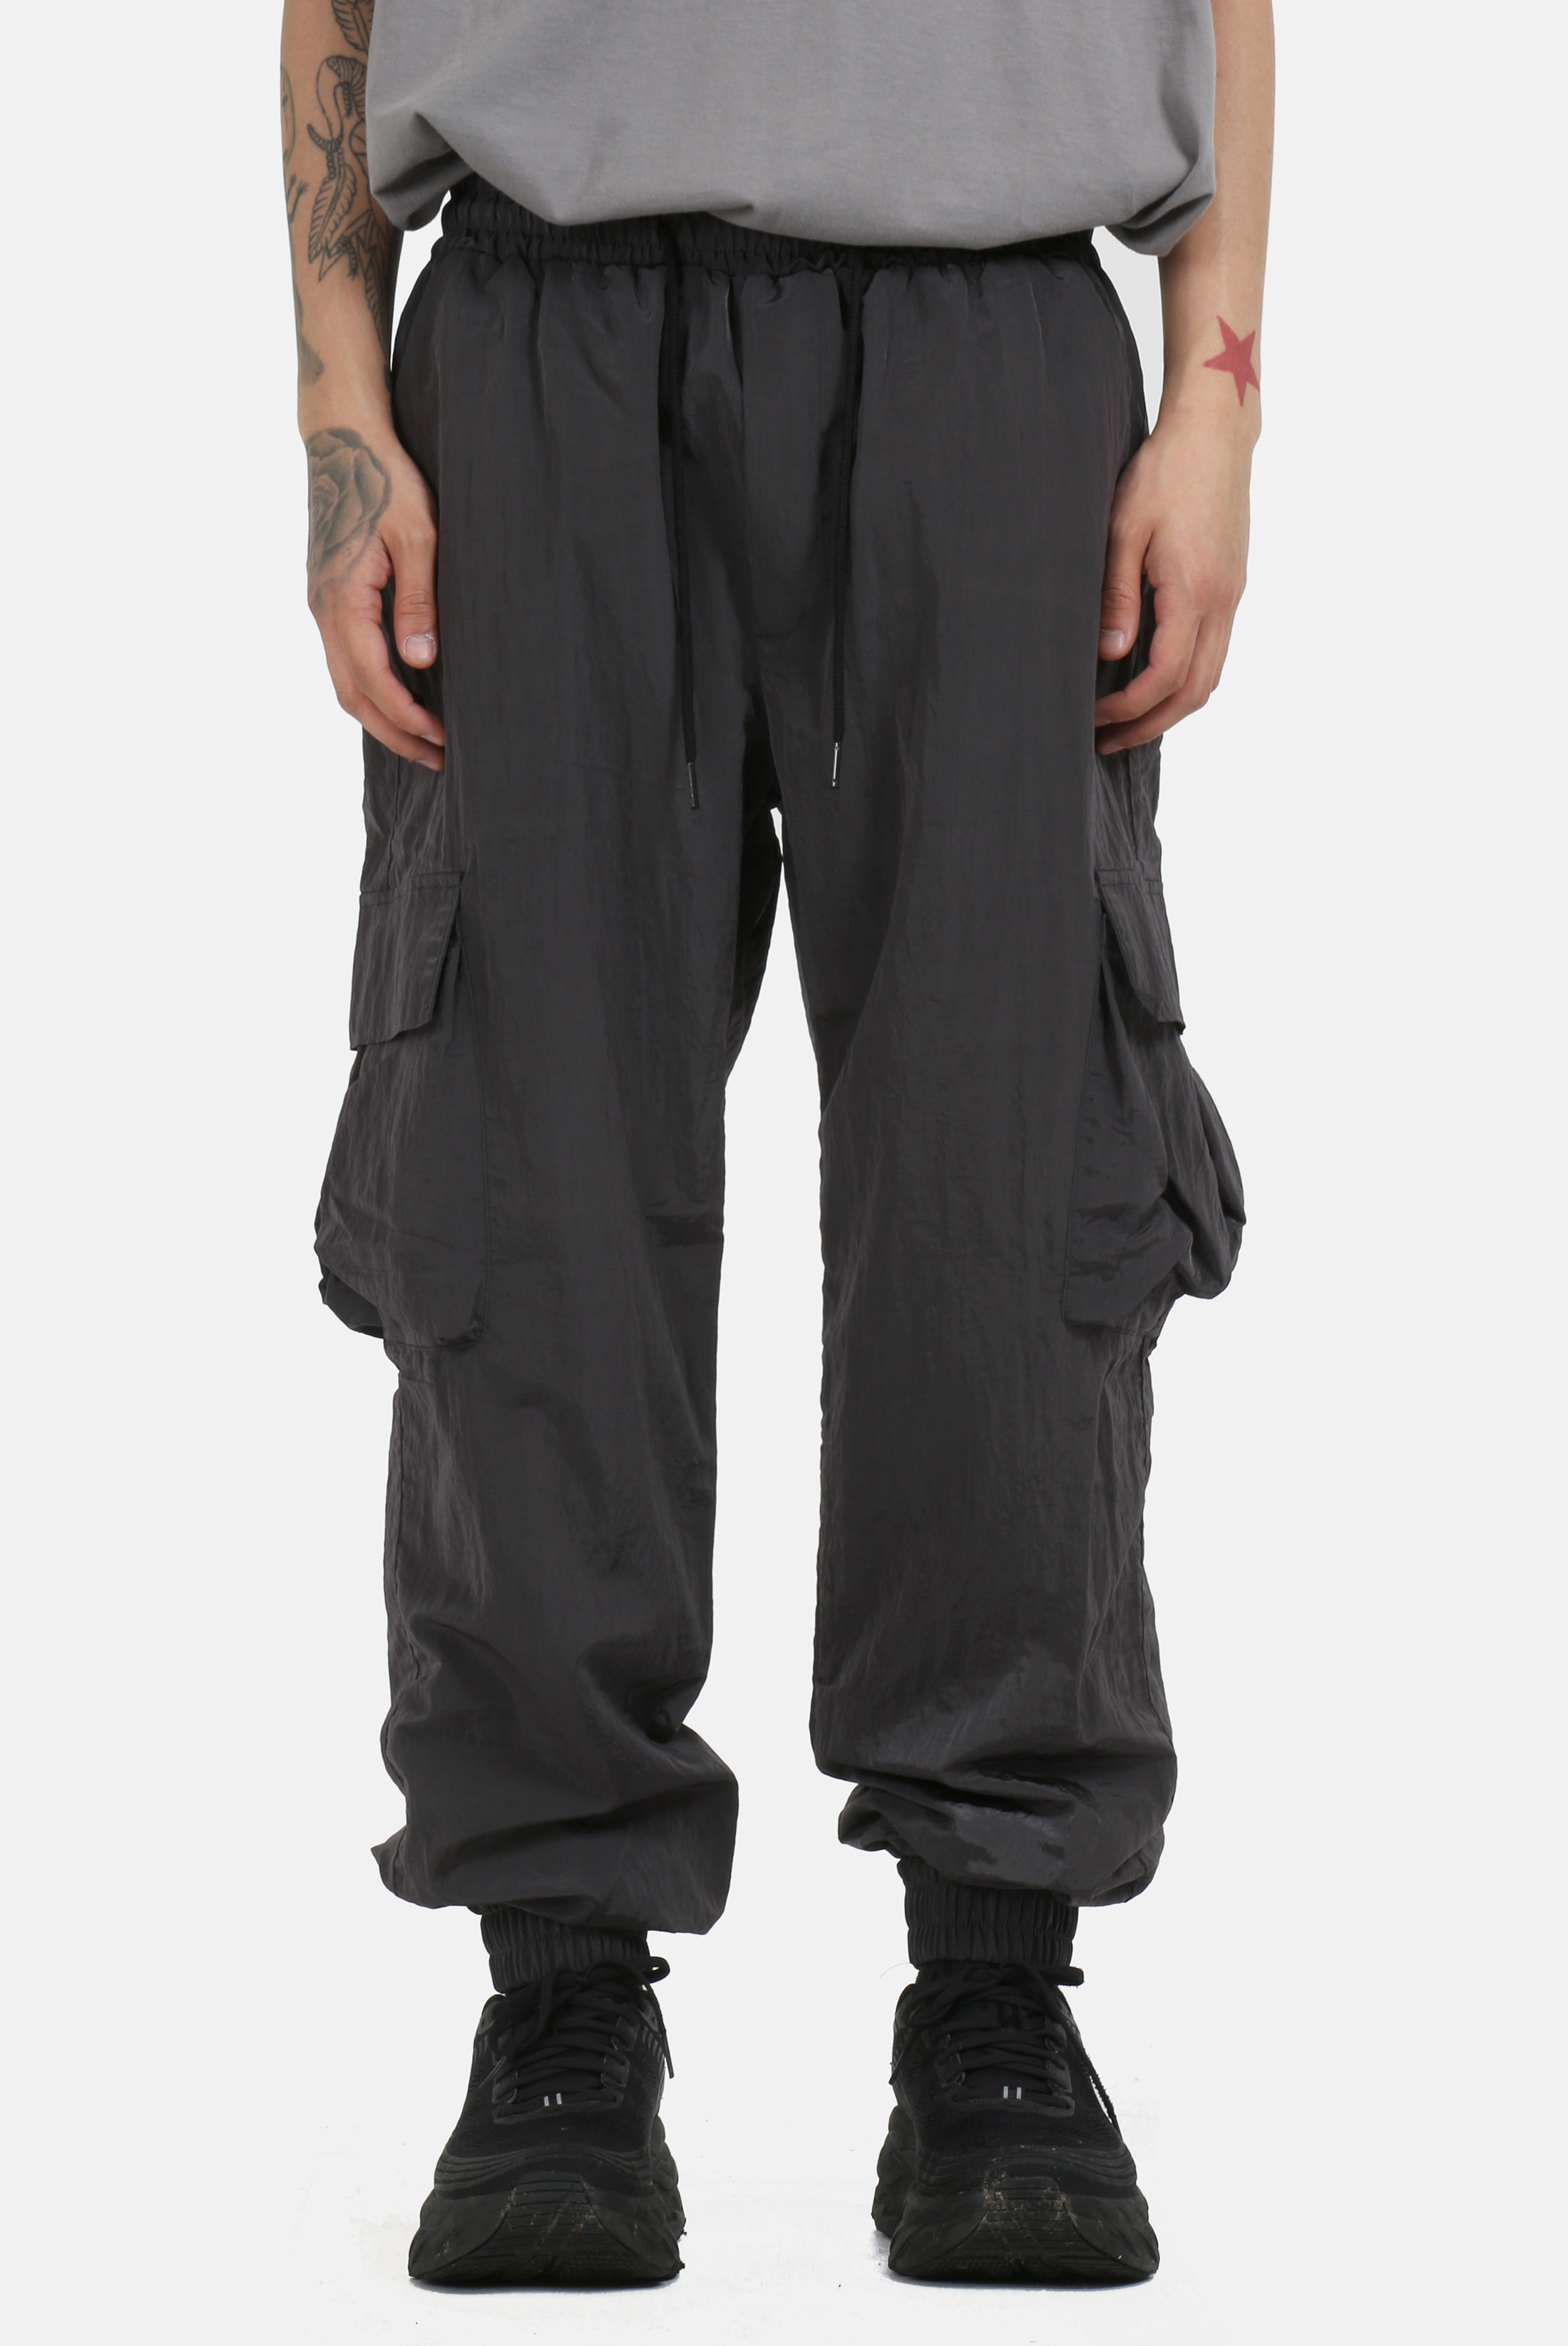 Metal_Nylon Cargo Joger_Pants